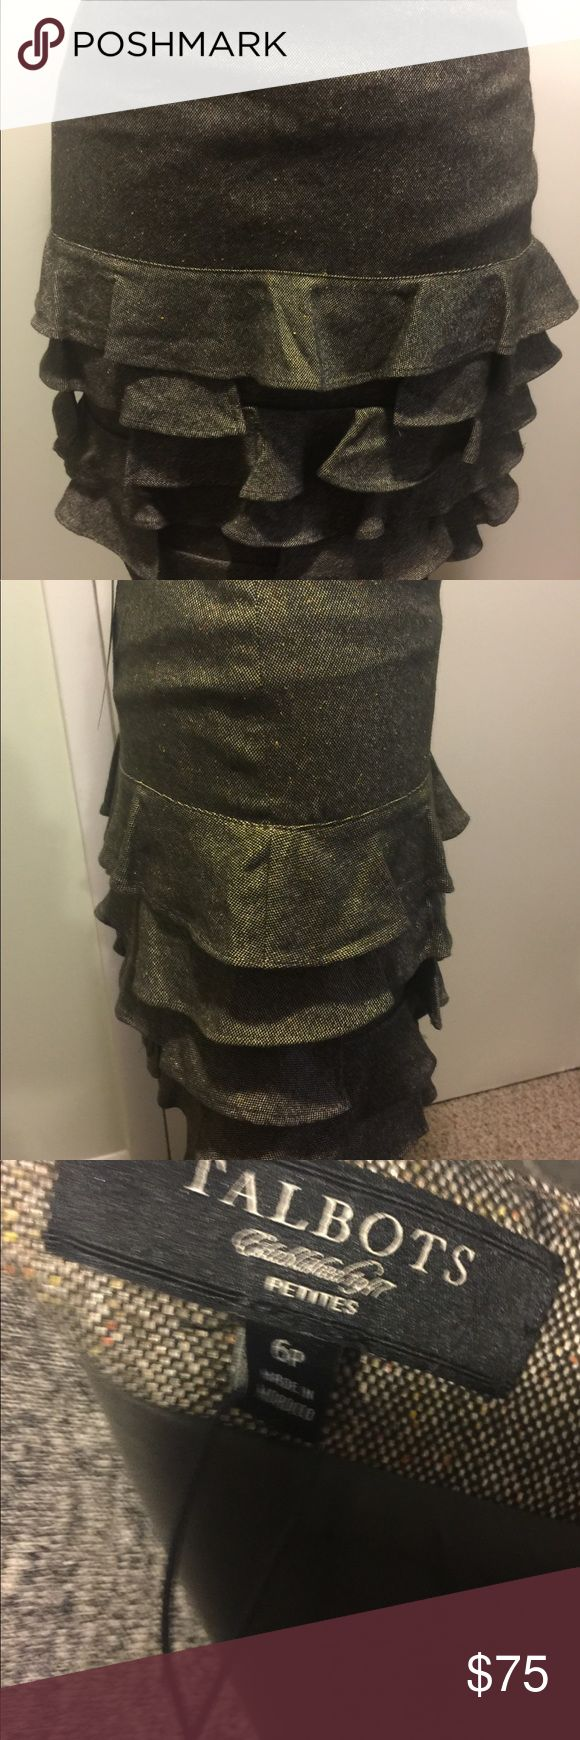 Flash Sale Wool Tweed Mini Skirt w/Ruffles Sz 6P NWT! This tweed wool blend Skirt from Talbots is a stunning unique piece. The colors of the tweed are light Olive, with some pale yellow and earth reds woven into it. Truly rare and gorgeous timeless piece. My photos don't do it justice. Skirt has a side zipper and it is fully lined. The lining is a beautiful darker Olive color size 6P. Talbots Skirts Mini